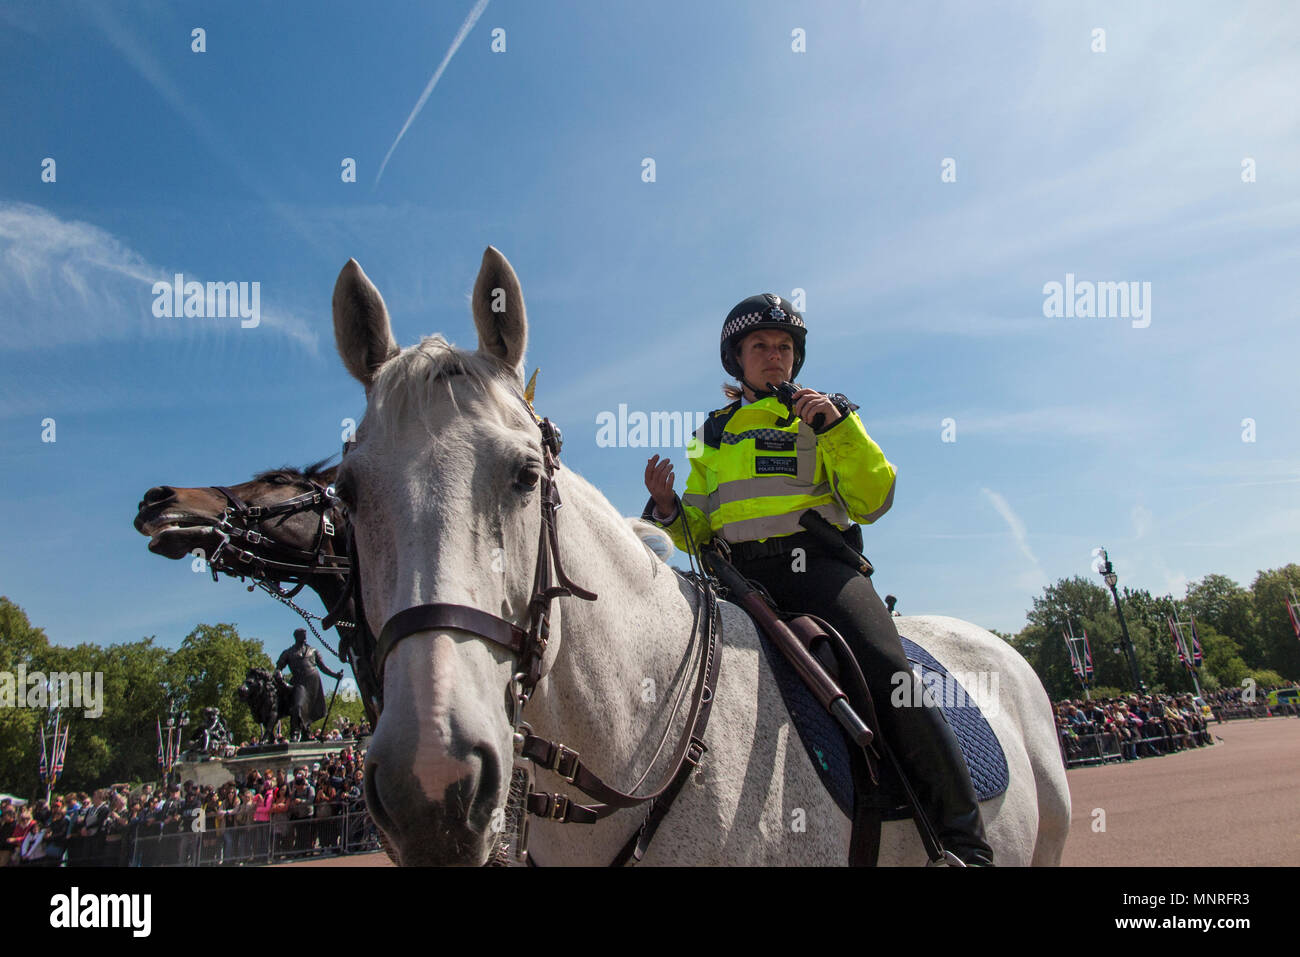 A policewoman on horseback at the changing of the guard at Buckingham Palace in London - Stock Image